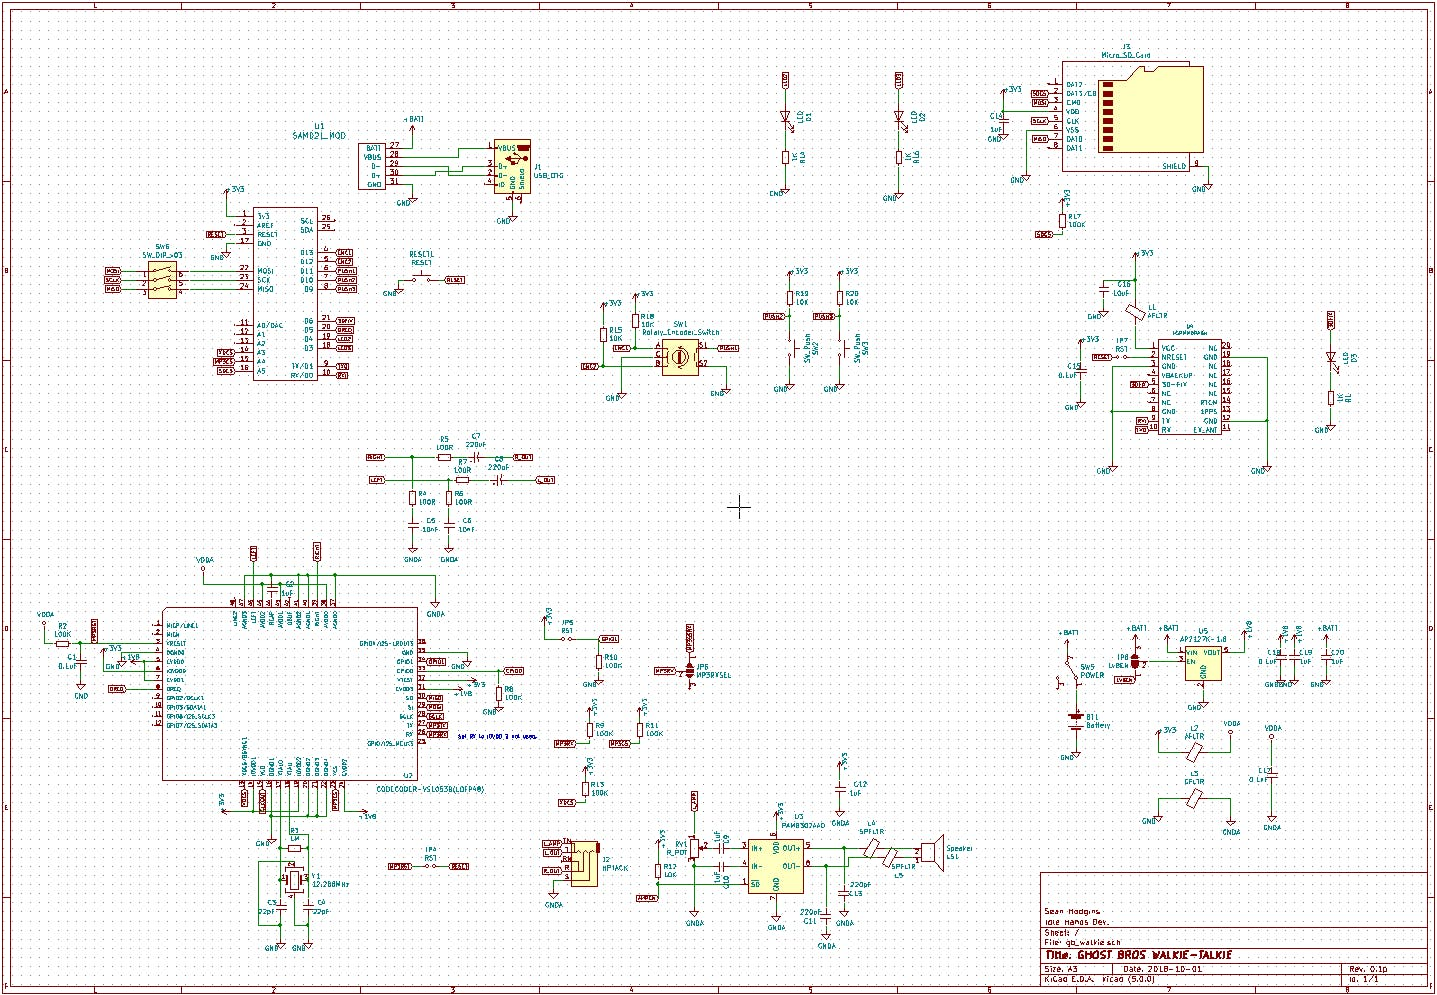 Fake Walkie-Talkie KiCad Schematic